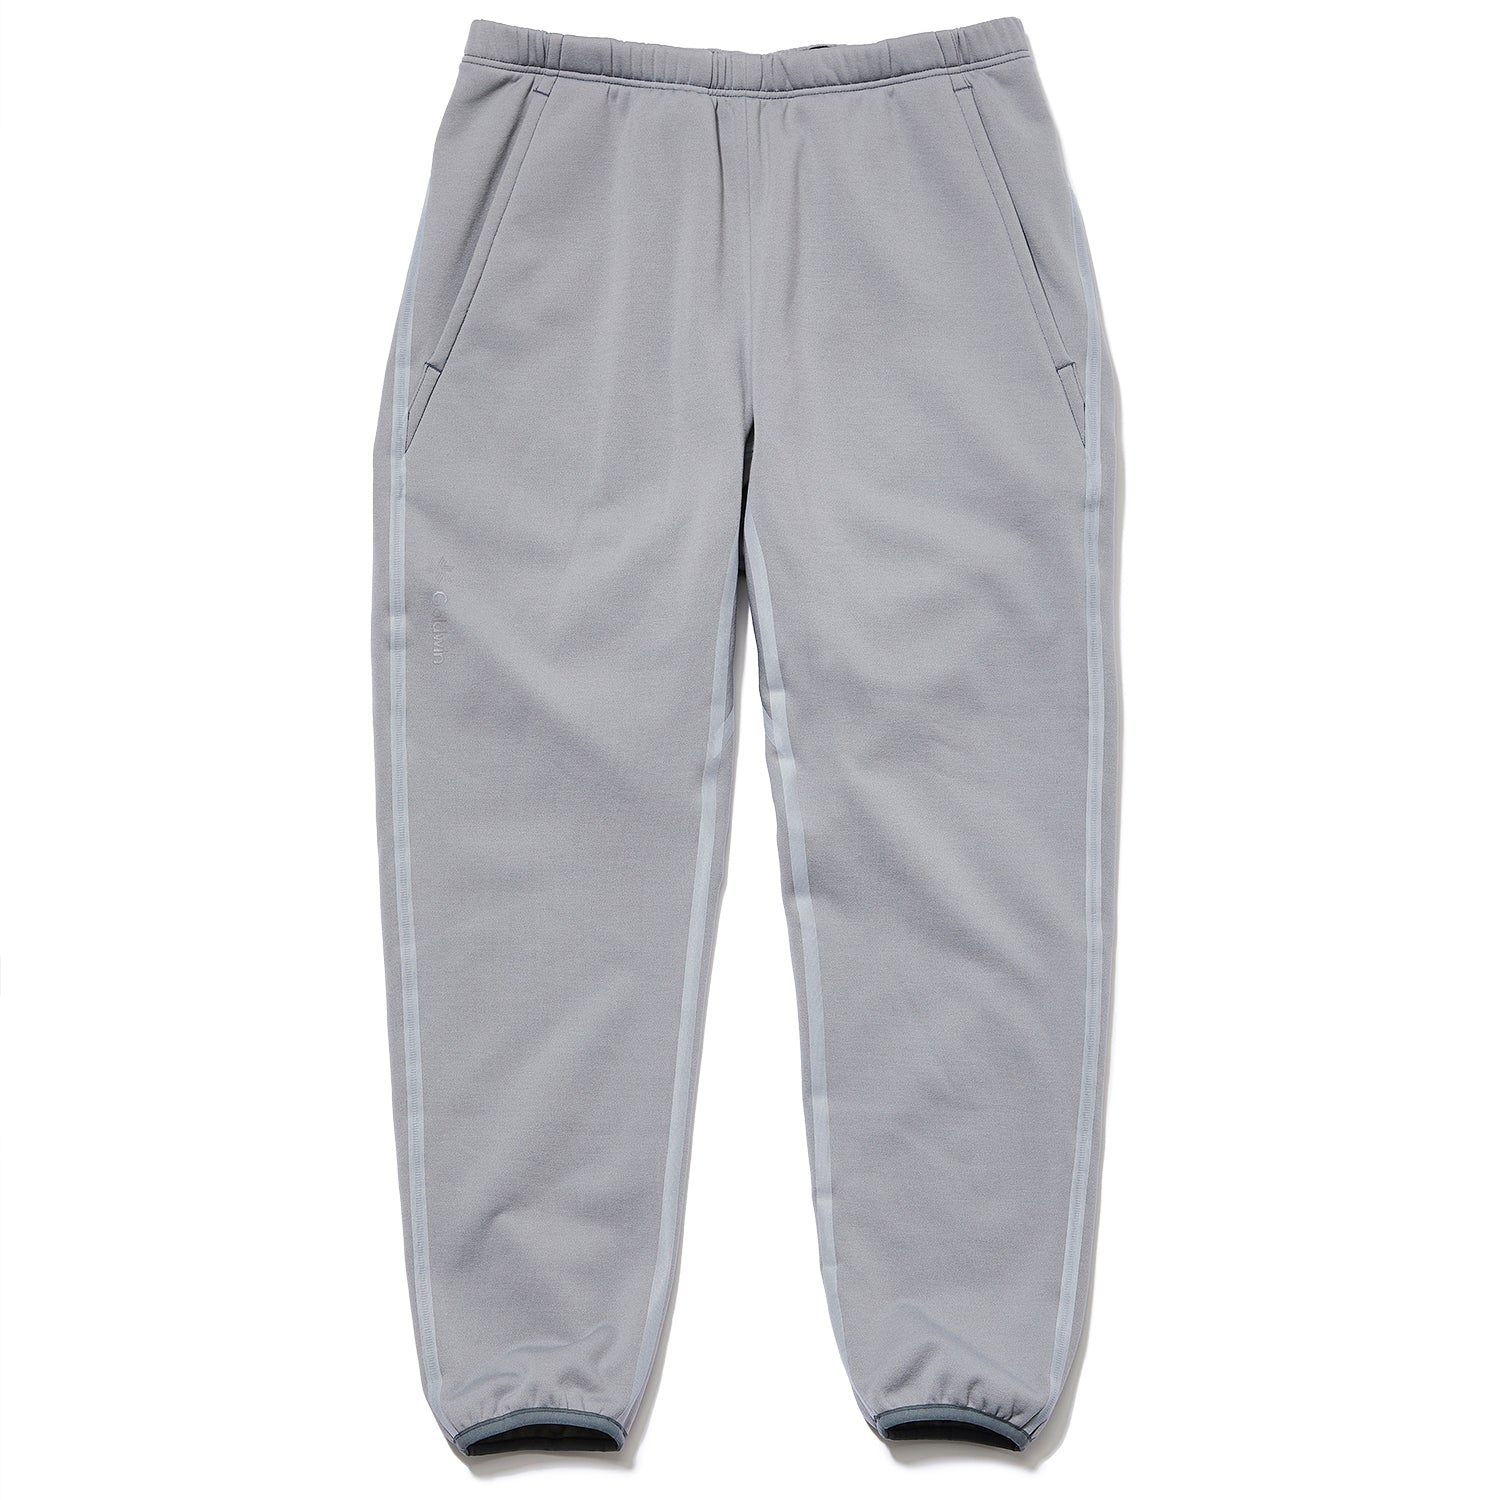 Ps Easy Pants